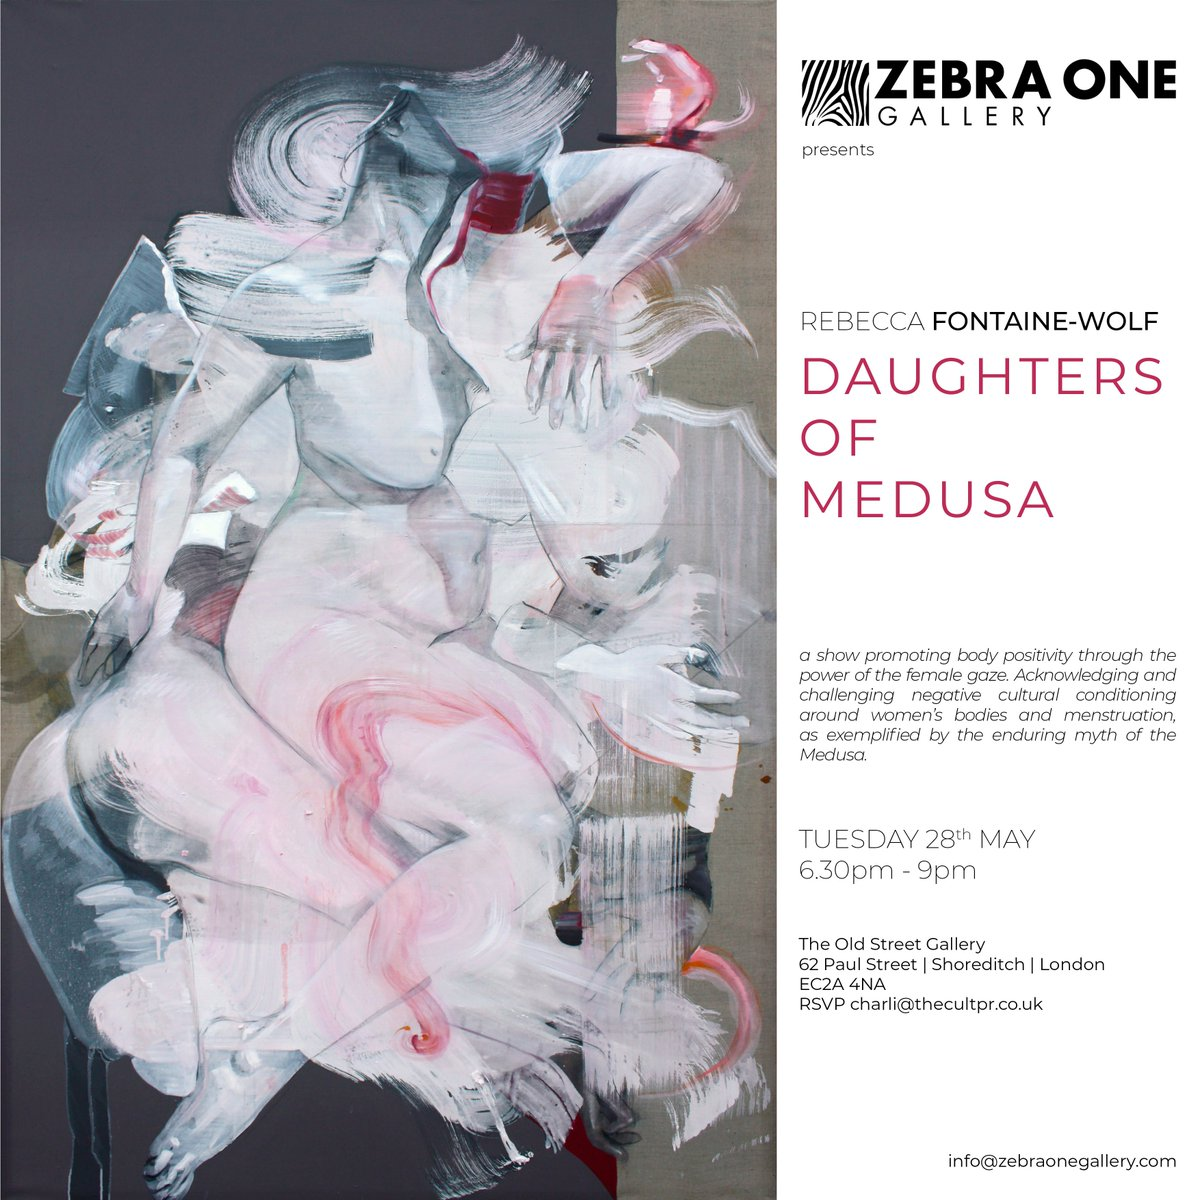 Daughters of Medusa | solo show | Zebra One Gallery | 28th May 2019 - mailchi.mp/35e4125fc97a/d…